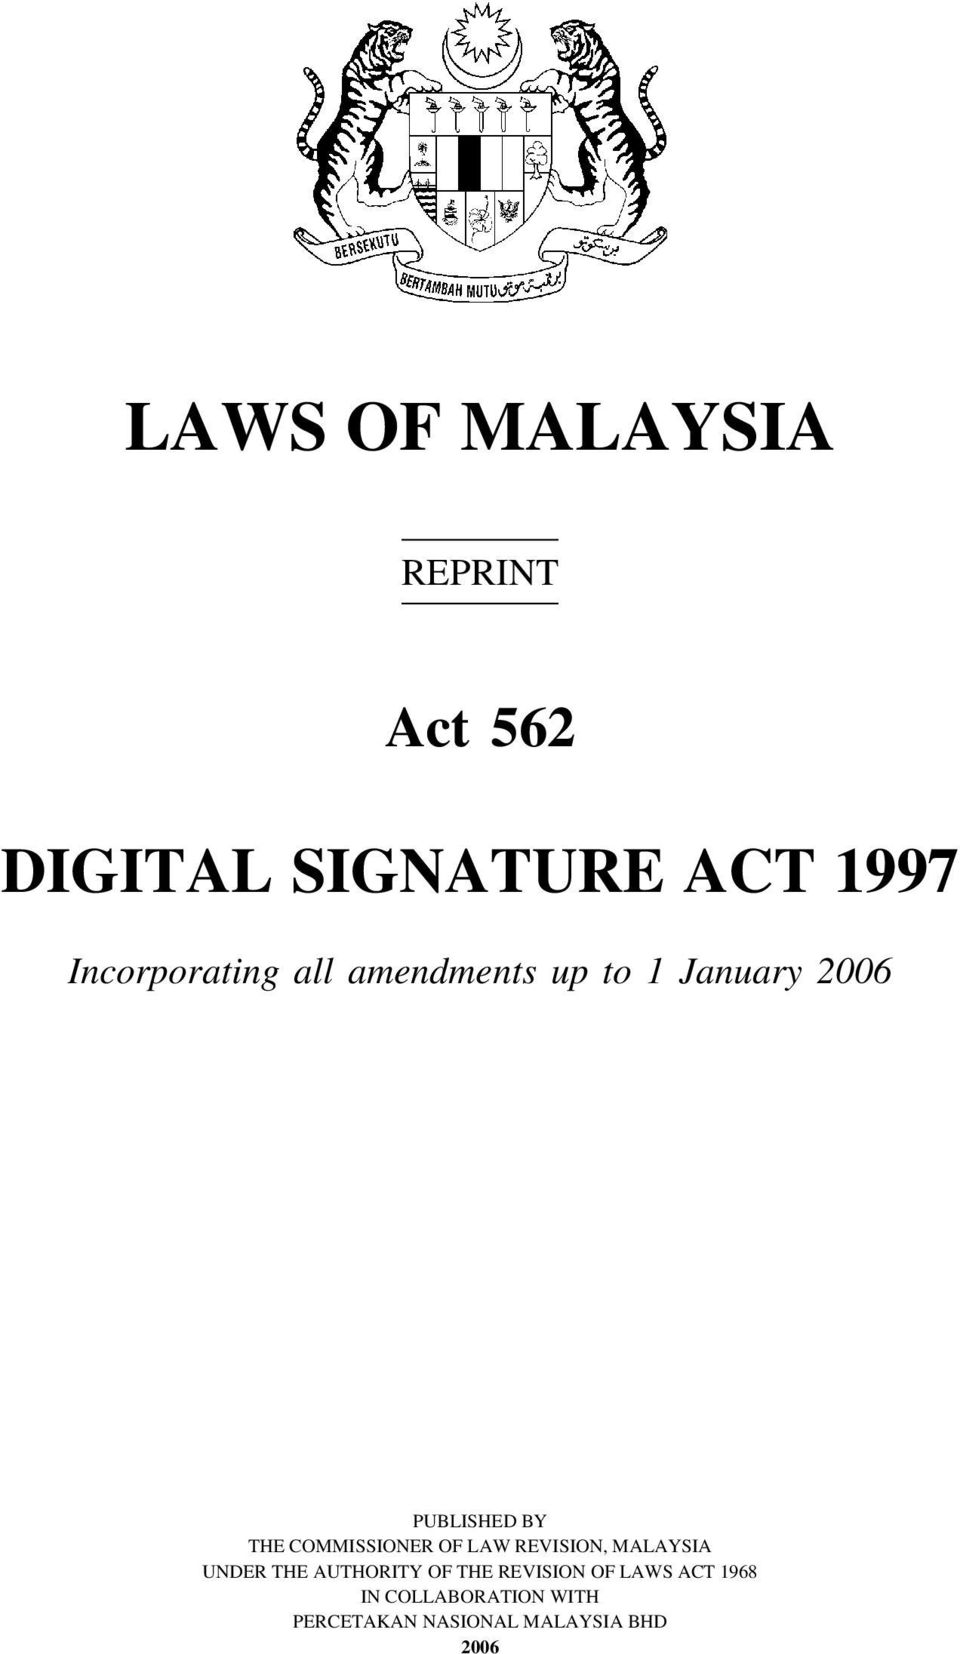 COMMISSIONER OF LAW REVISION, MALAYSIA UNDER THE AUTHORITY OF THE REVISION